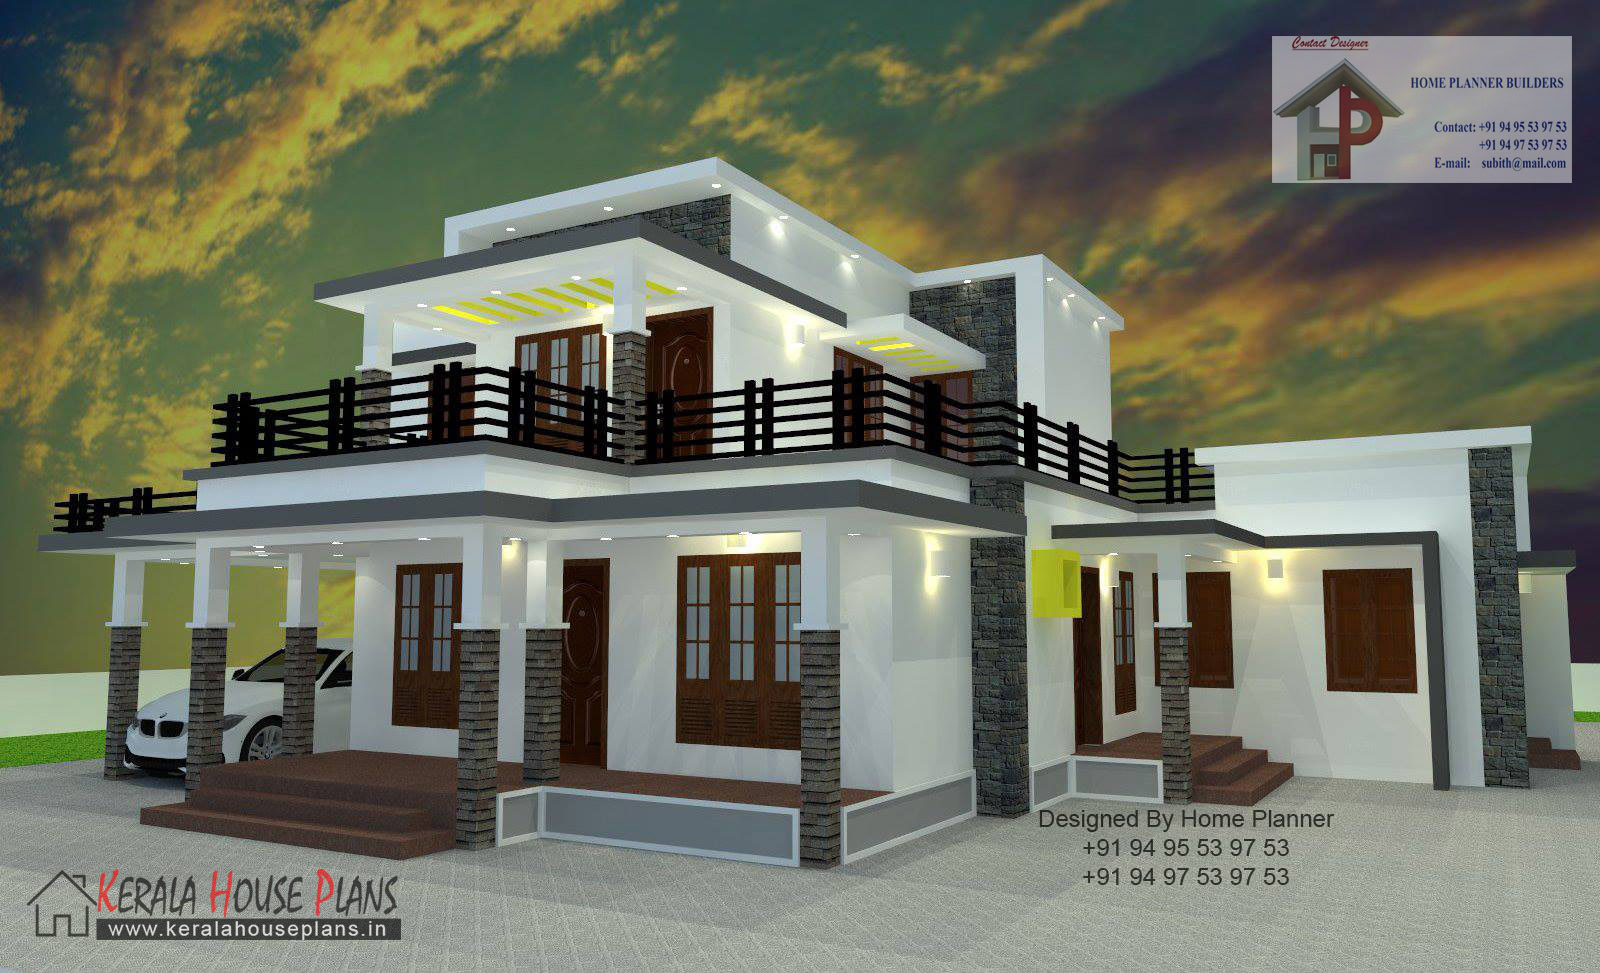 2000 sqft box type house kerala house plans designs Types of house plans